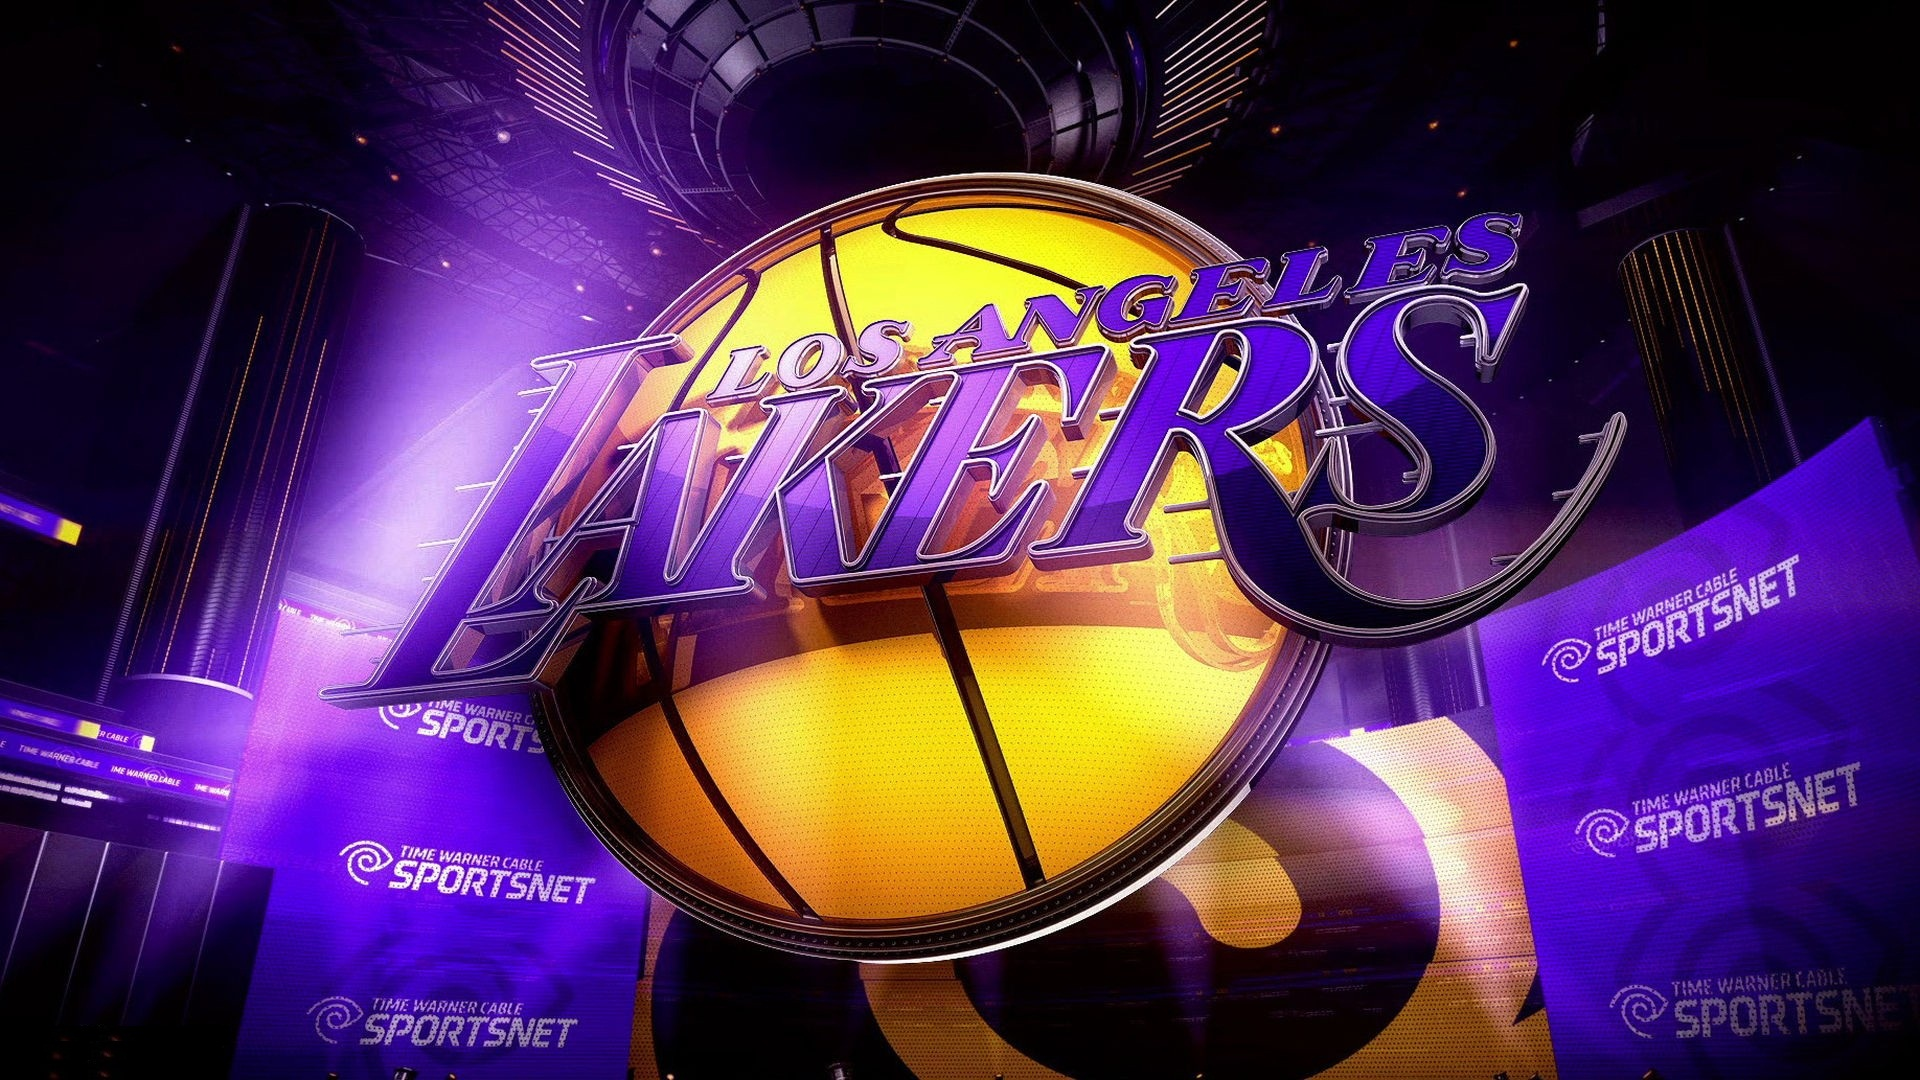 Los Angeles Lakers For PC Wallpaper 2020 Basketball Wallpaper 1920x1080